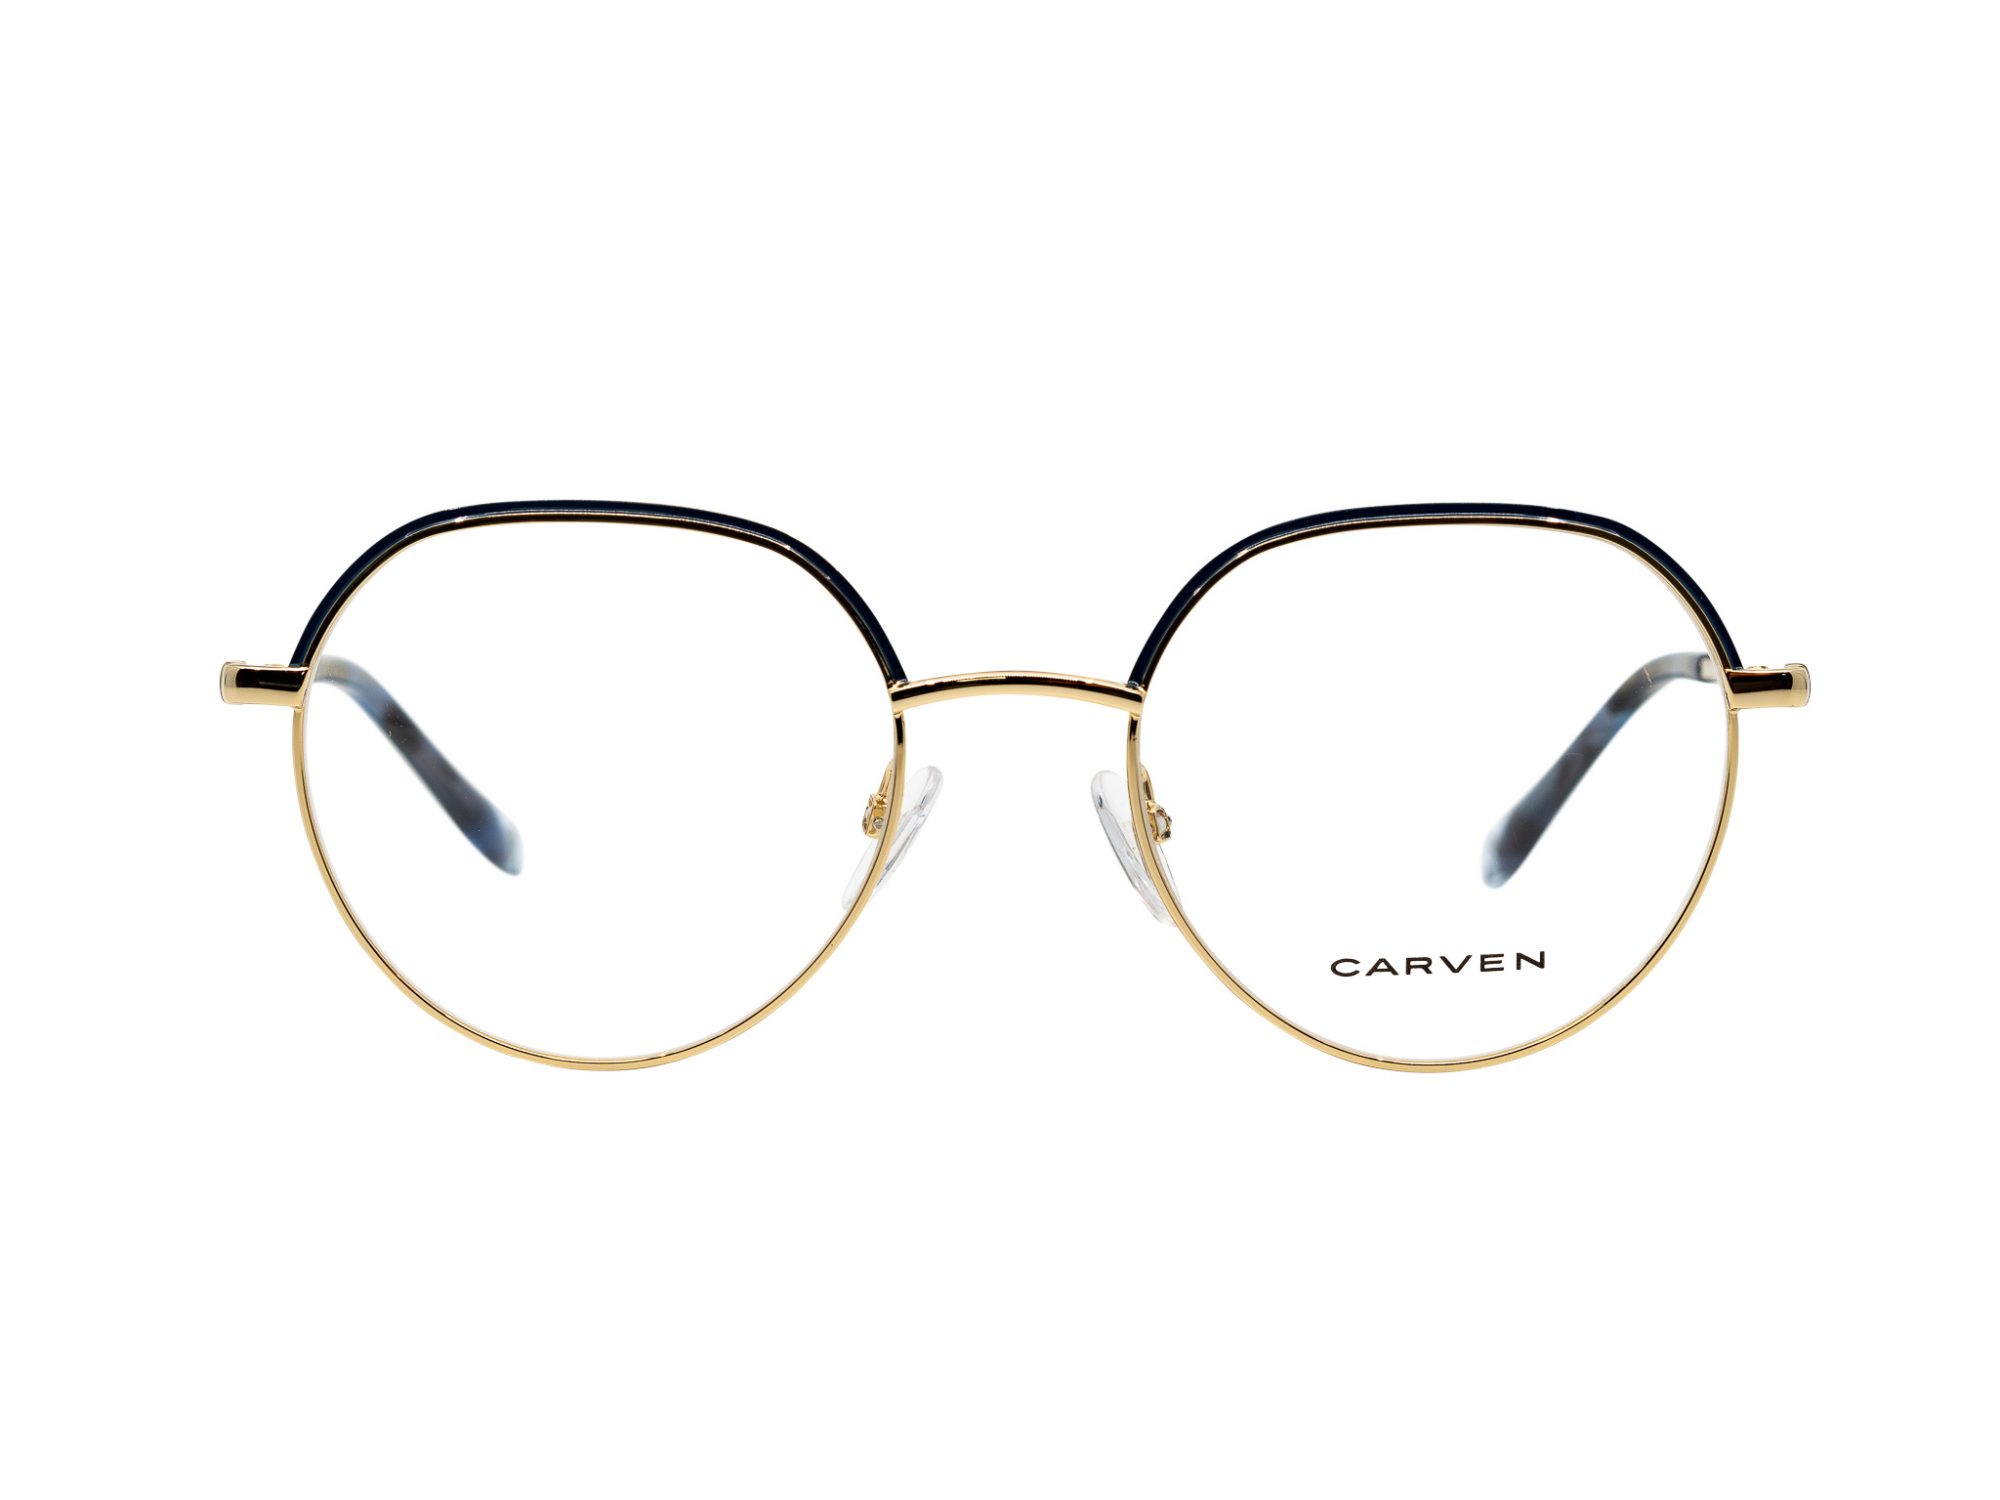 Carven CC1042 Dore Clair Brillant Blue